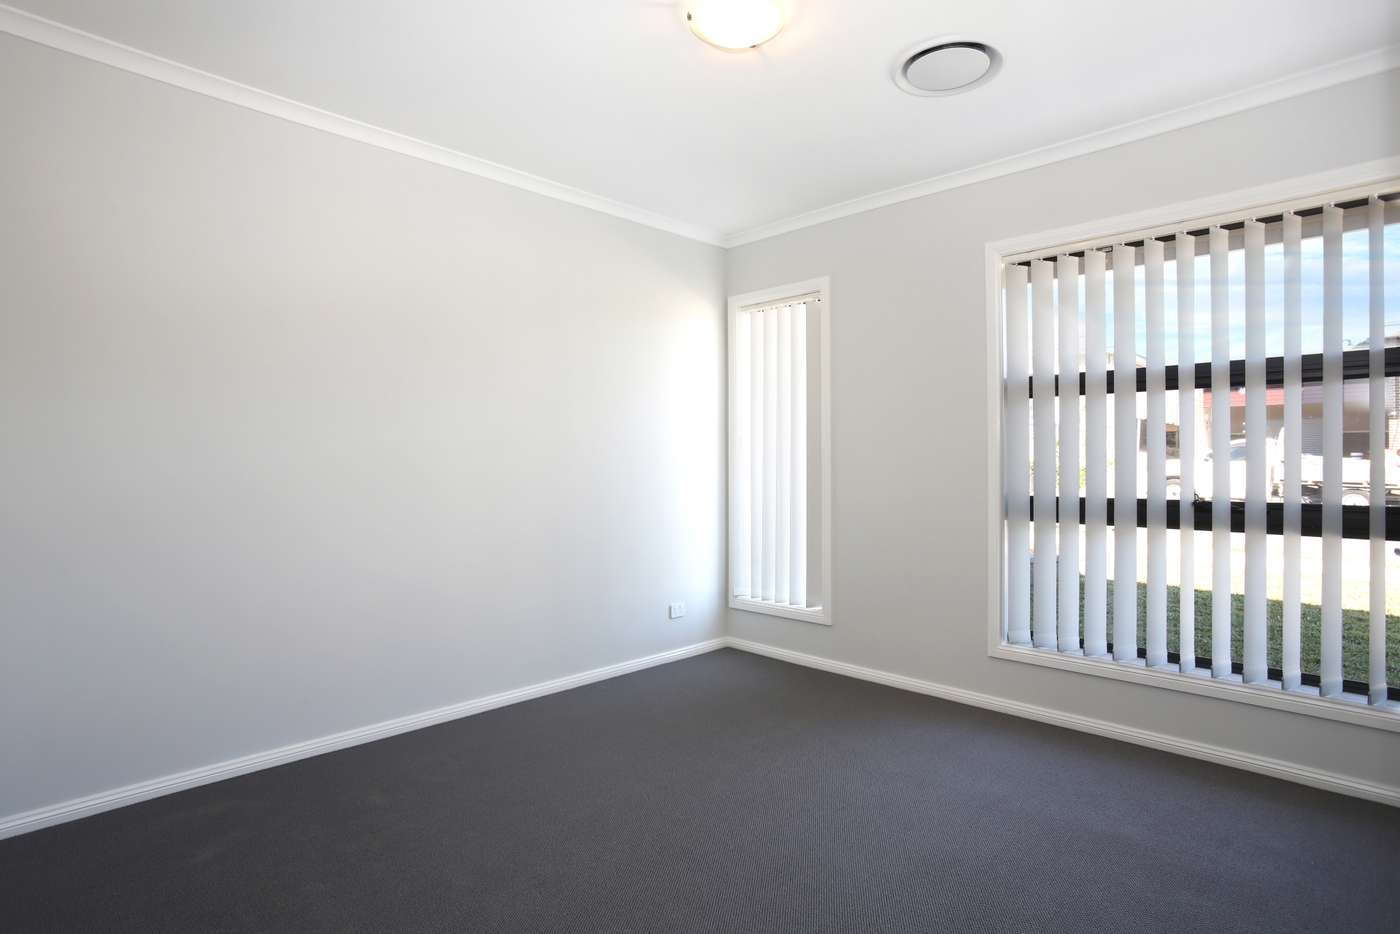 Sixth view of Homely house listing, 37 Loveday Street, Oran Park NSW 2570